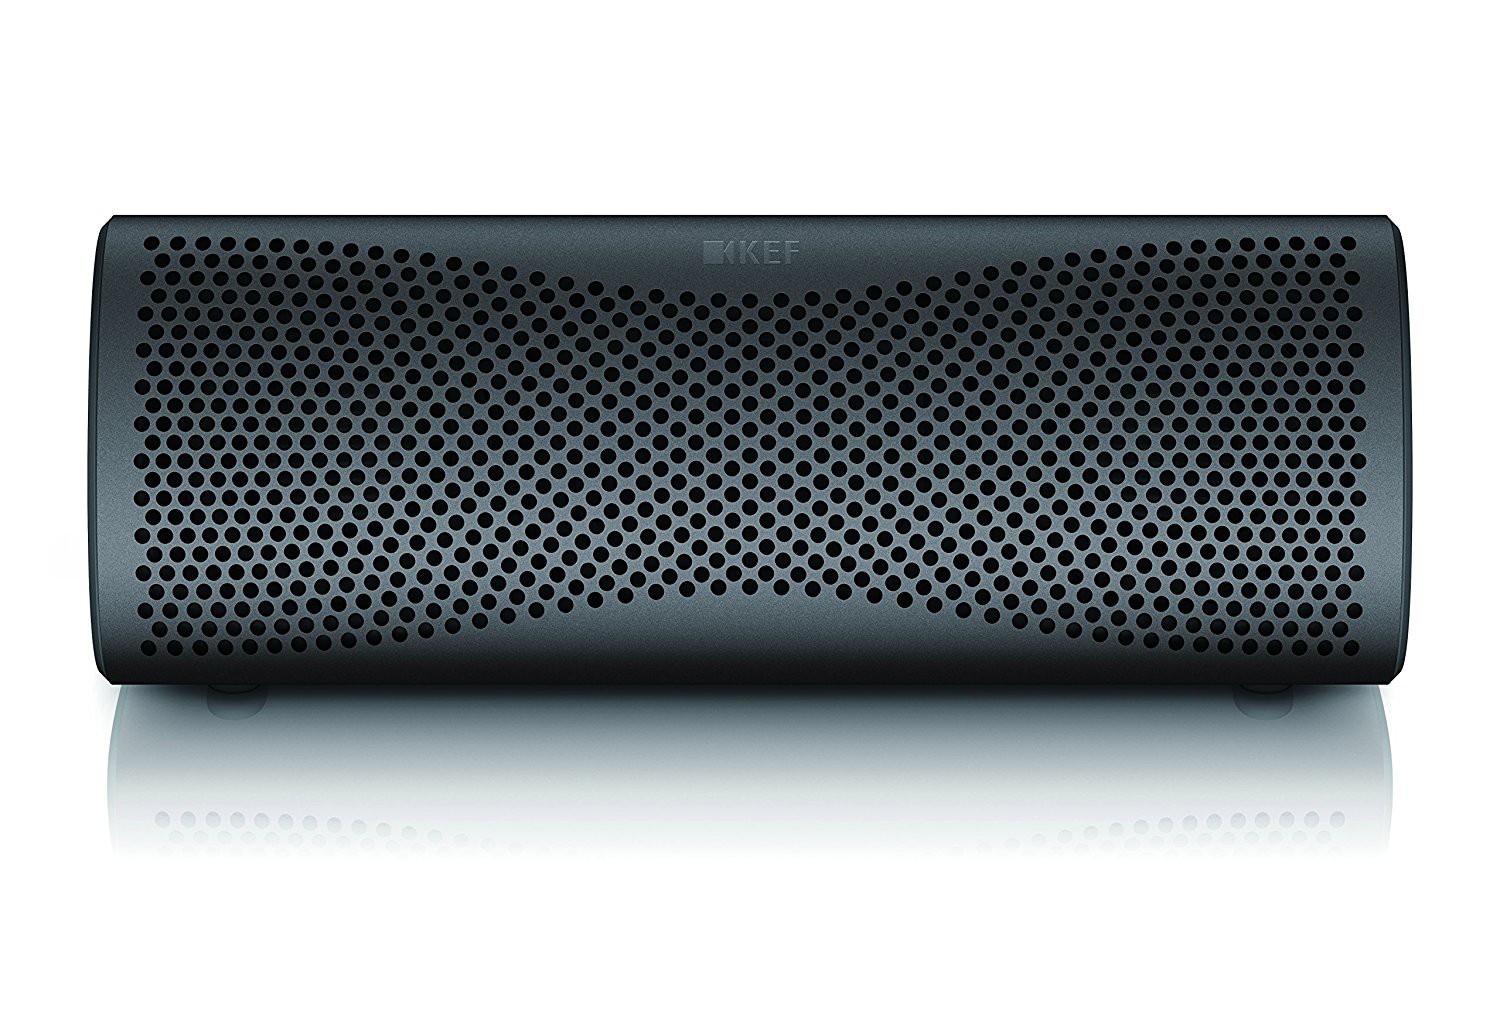 kef speakers bluetooth. kef muo wireless bluetooth speaker - gunmetal kef speakers w